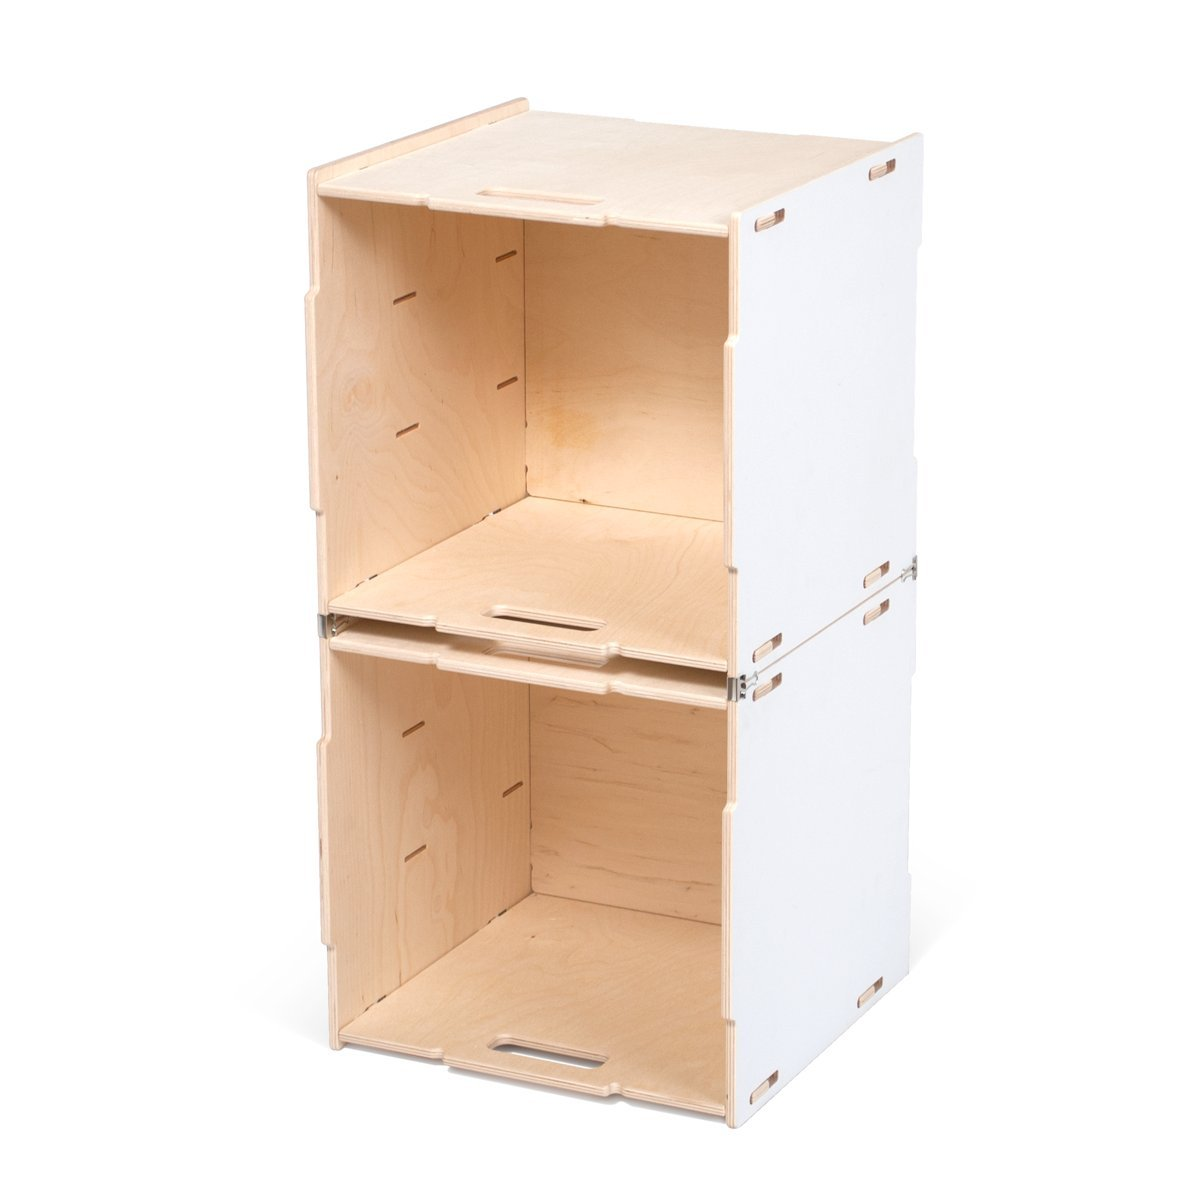 Stacking Crates Stacking Cubby (Two Crates) ホワイト CR_2SC-WHT B01MUCW97V Stacking Cubby (Two Crates)|White Painted Baltic Birch White Painted Baltic Birch Stacking Cubby (Two Crates)